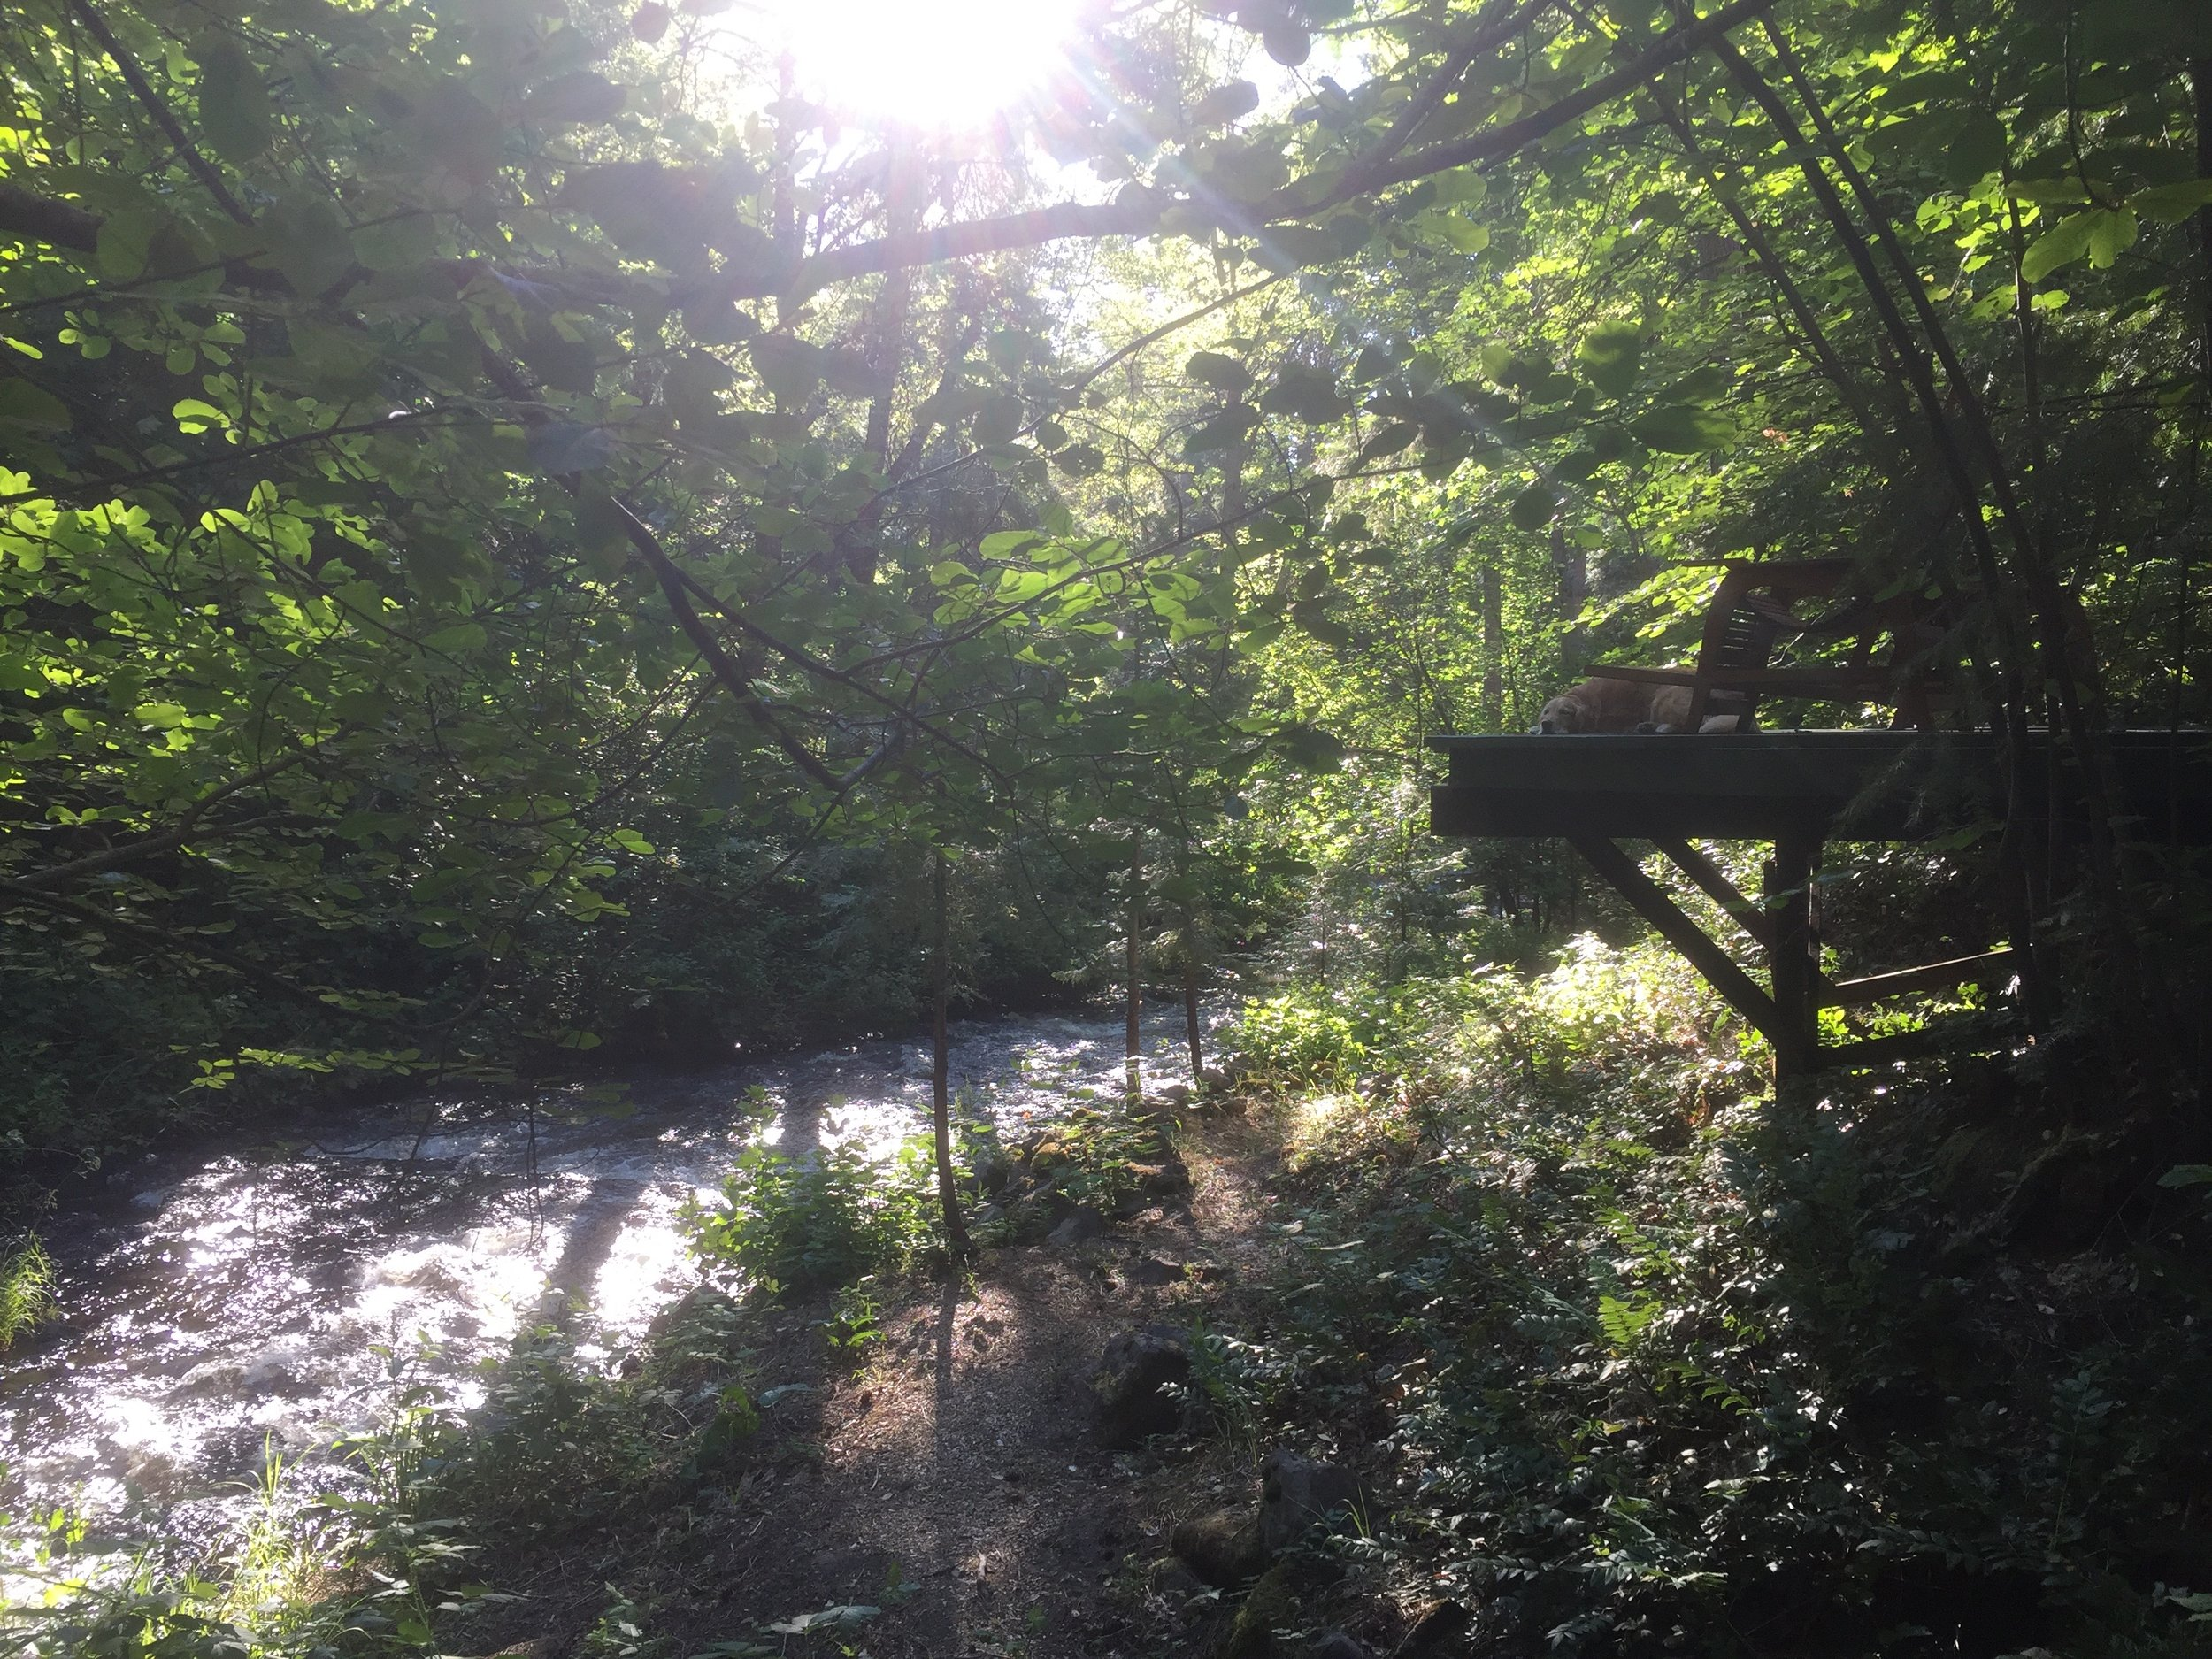 Wagon creek flowing through the wellness realm of energy is everything. The deck to the right allows for one to sit and enjoy the sounds of the water, birds, chipmunks and more.. Many are swept deep into the experience of self and feel an amazing sense of grounding.